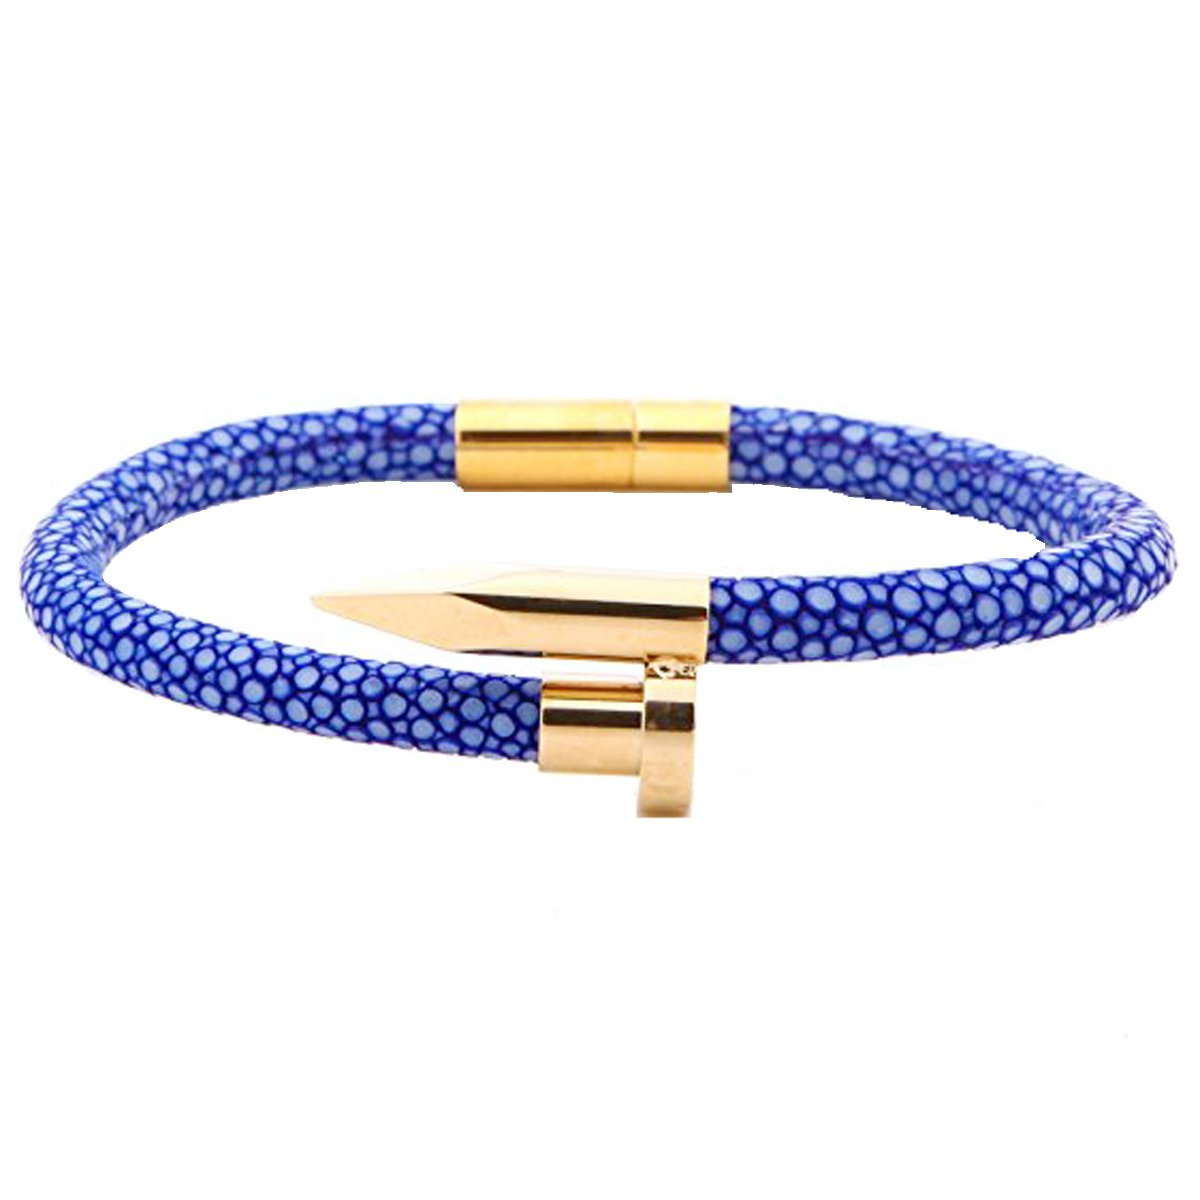 Blue real stingray leather cord with 18K gold pvd plating nail bracelet (8 inches)